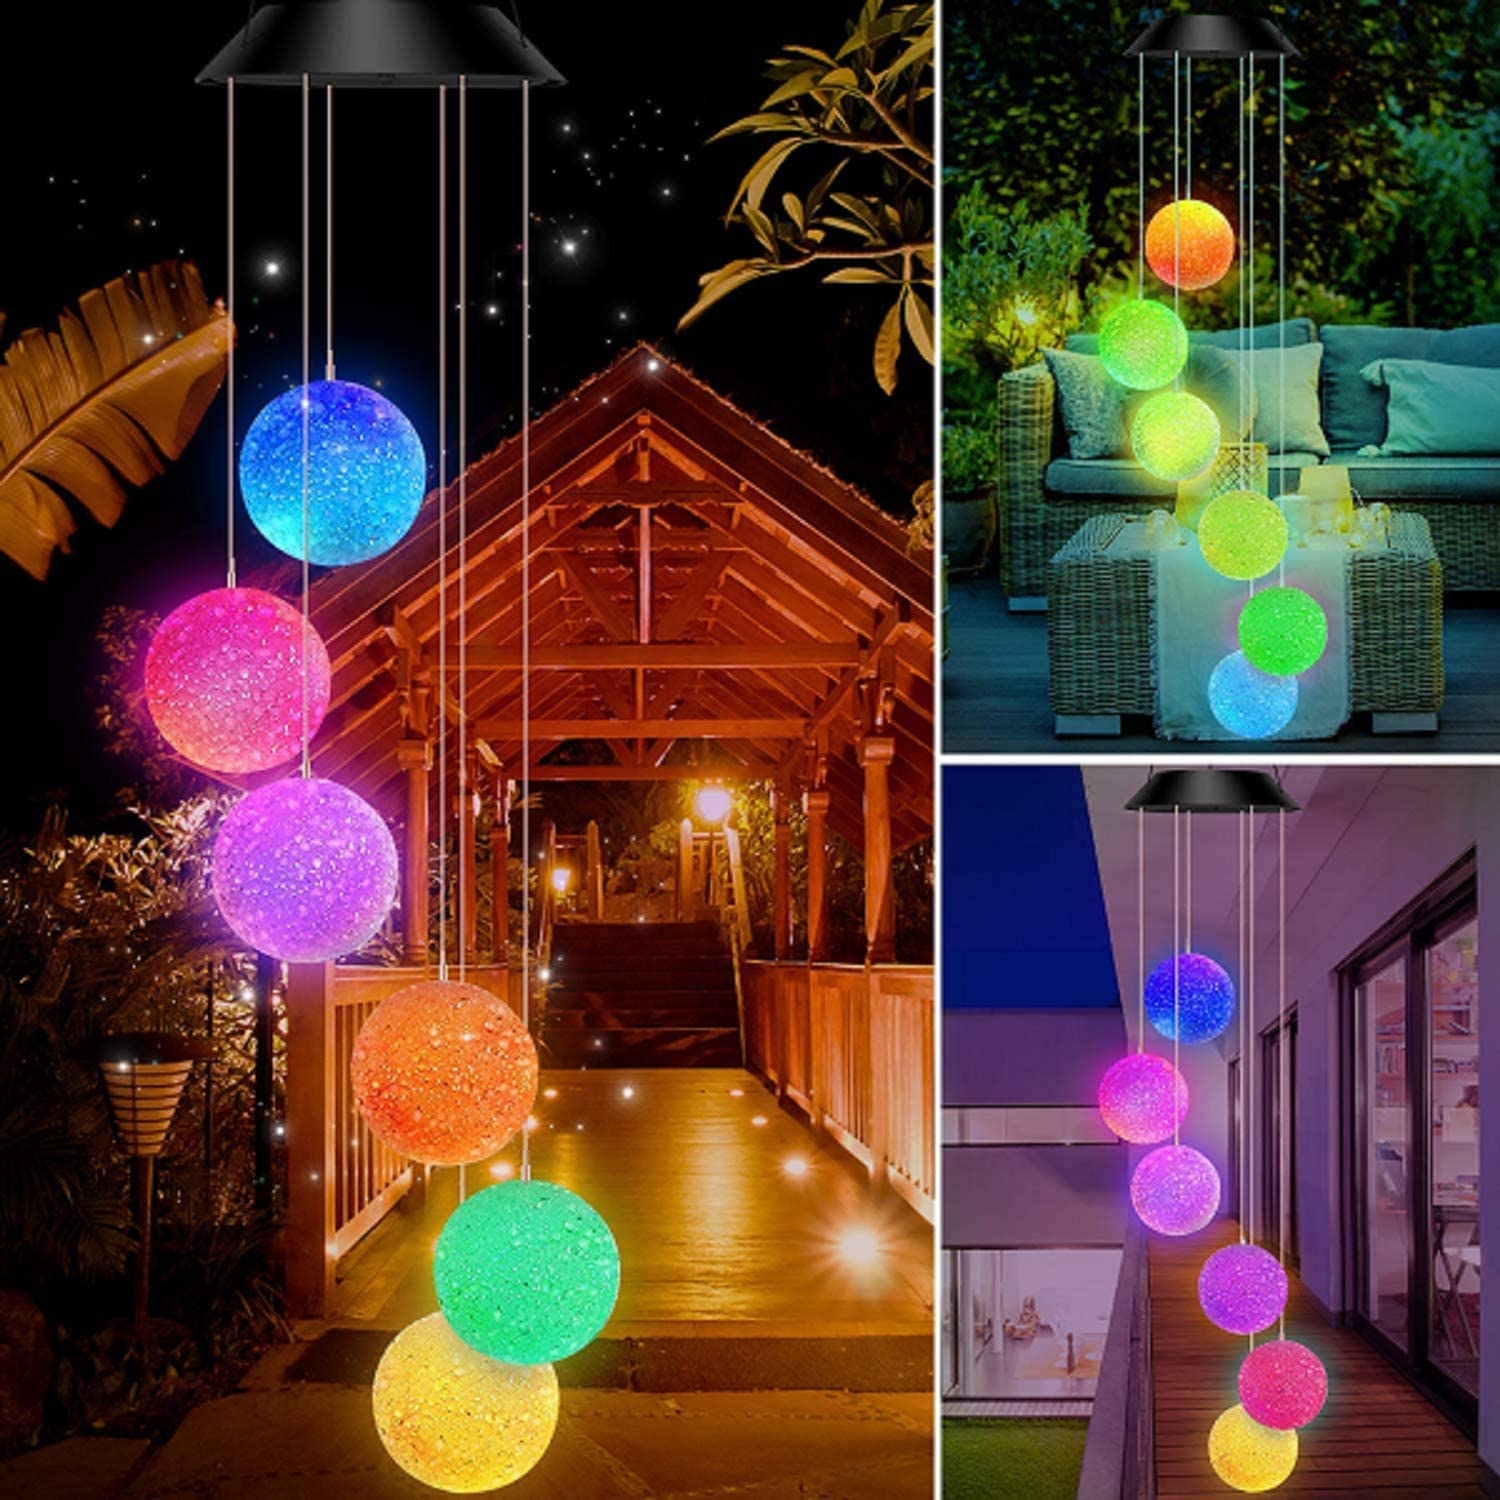 Lampelc Solar Powered Wind Chimes Outdoor Multi Color Changing Solar Crystal Ball Light Waterproof Garden Yard Decor, Gfits for Mother's Day/Christmas